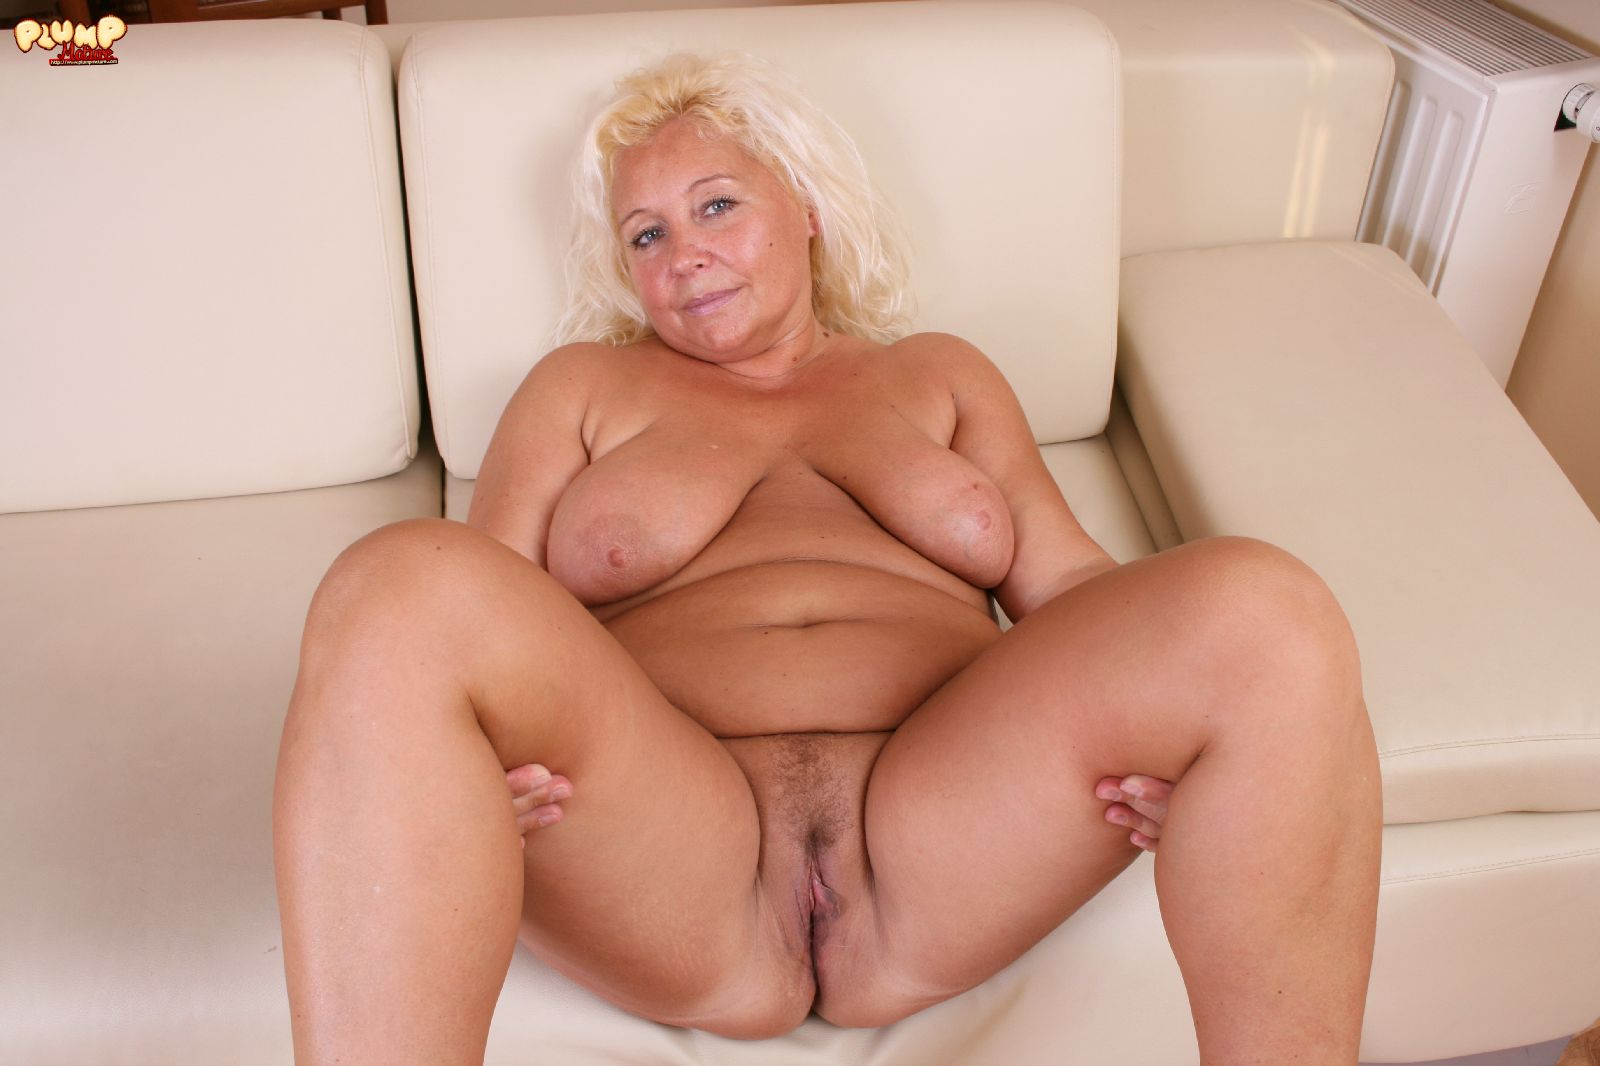 Hd granny nude fucks videos